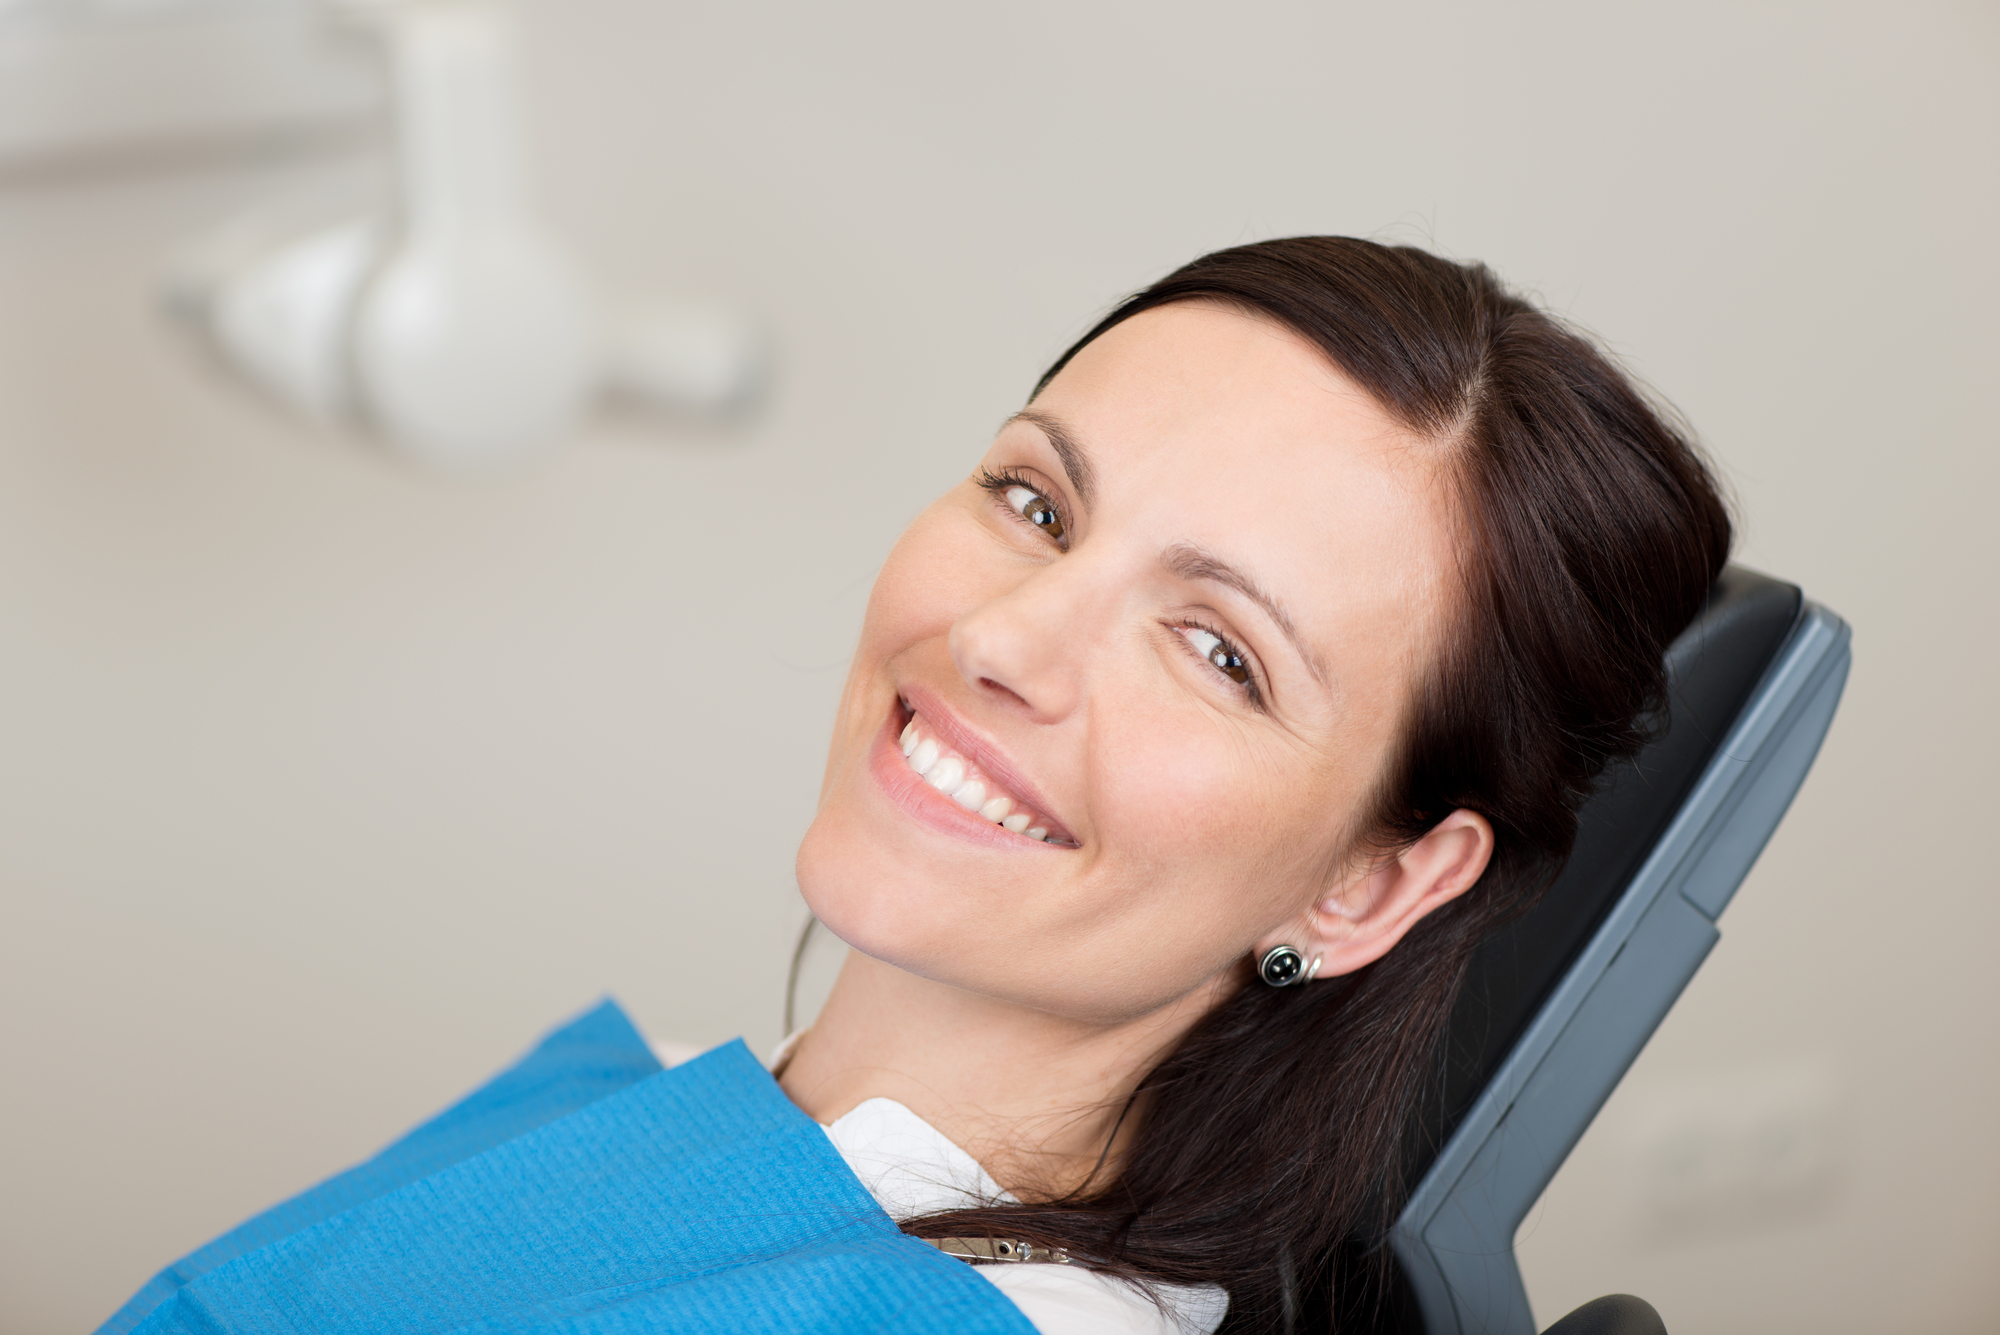 who offers the best veneers west palm beach?